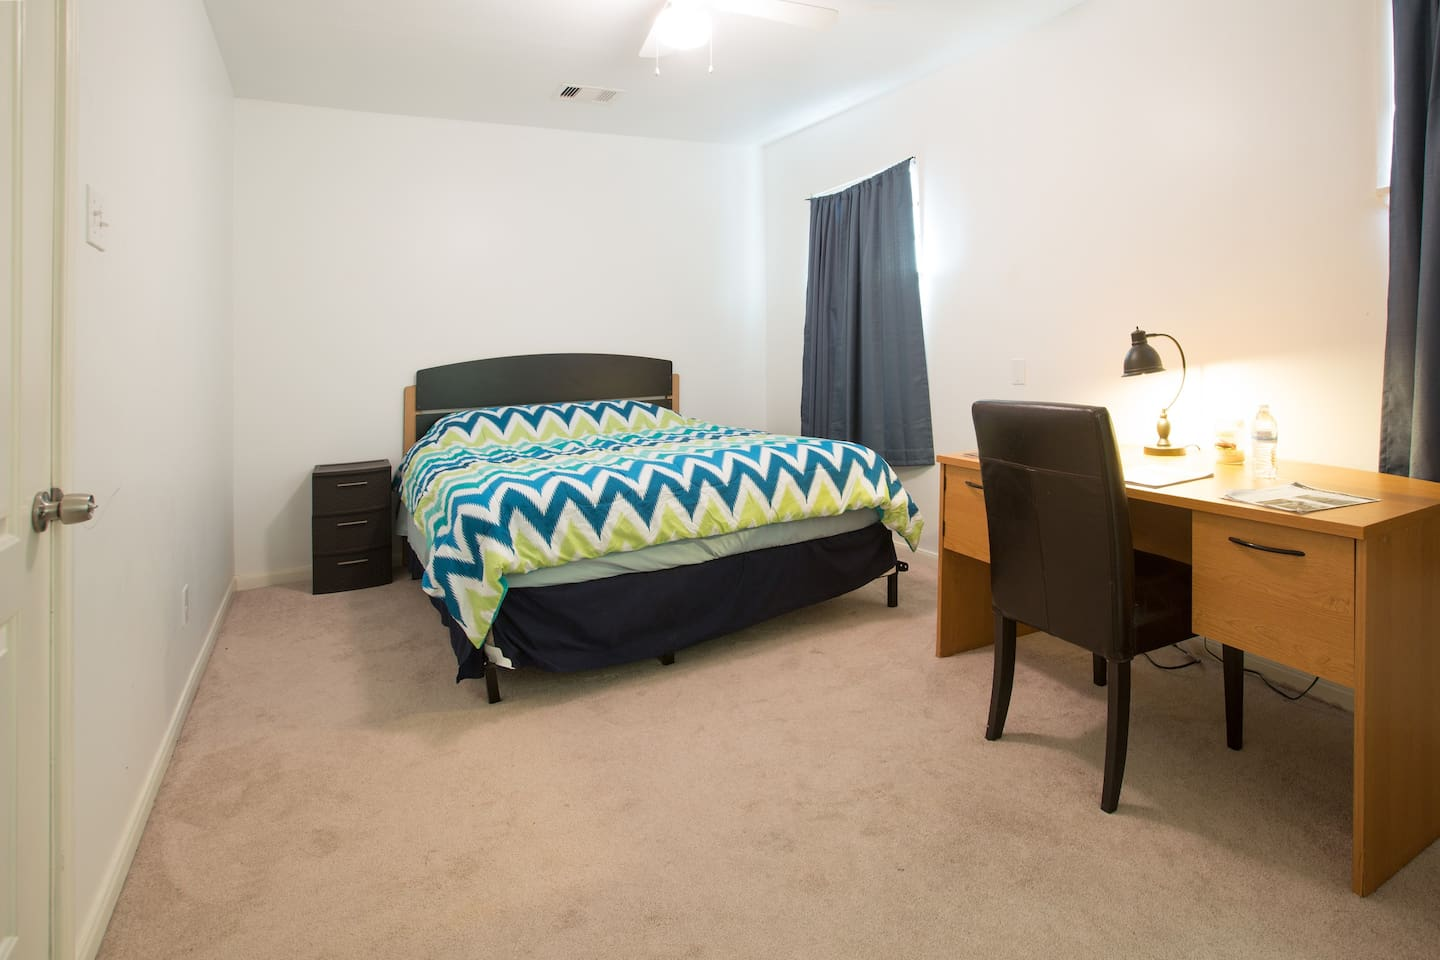 A great room for travelers, students and young professionals!